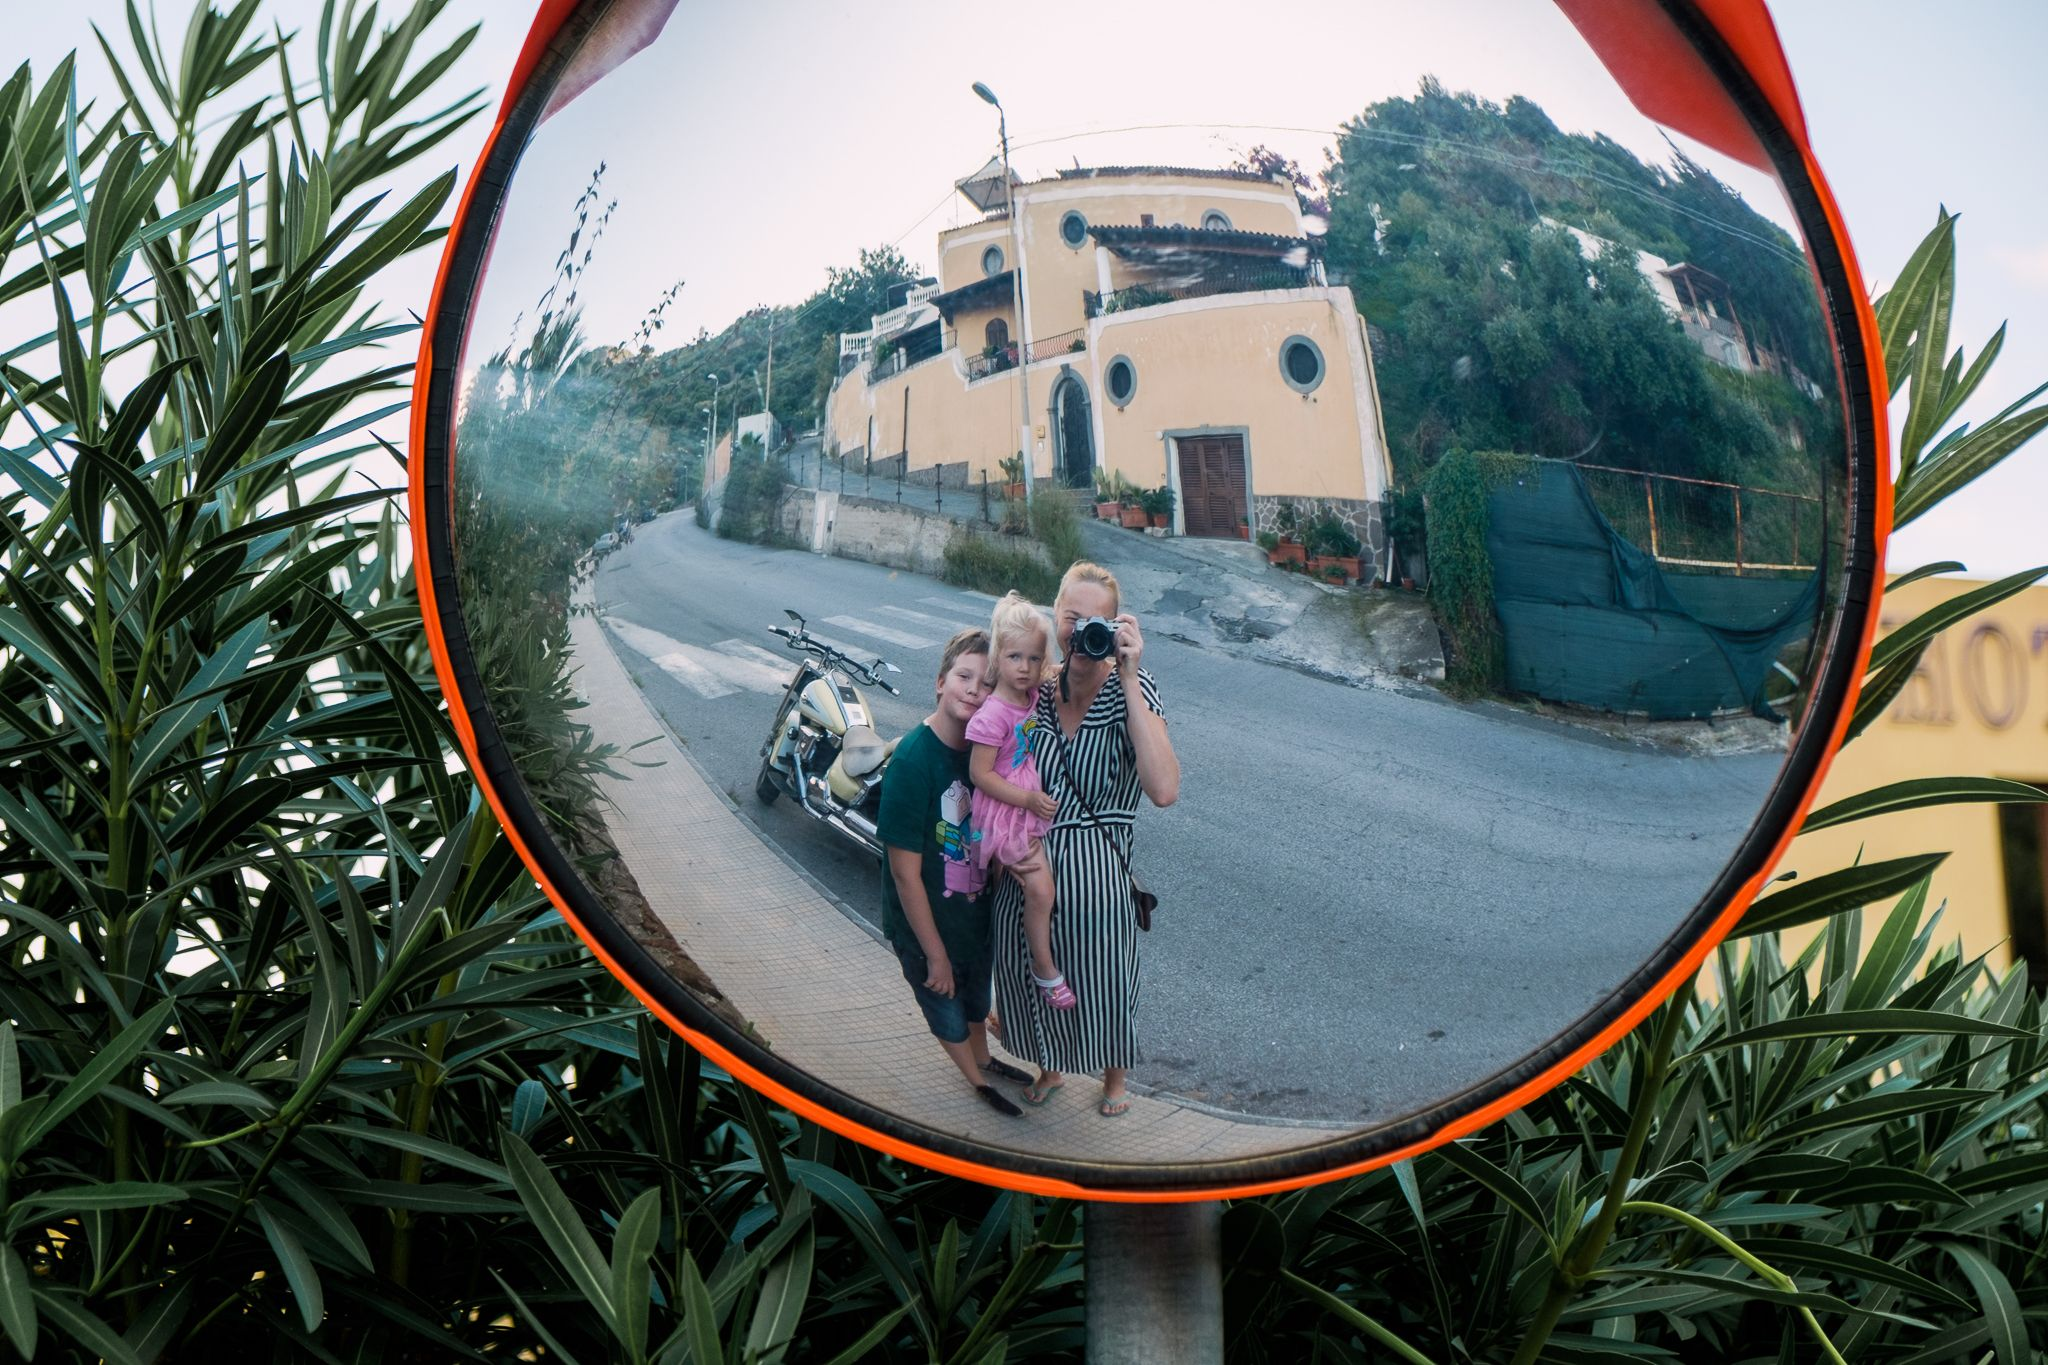 Katrin & Co. living in the moment in Sicily